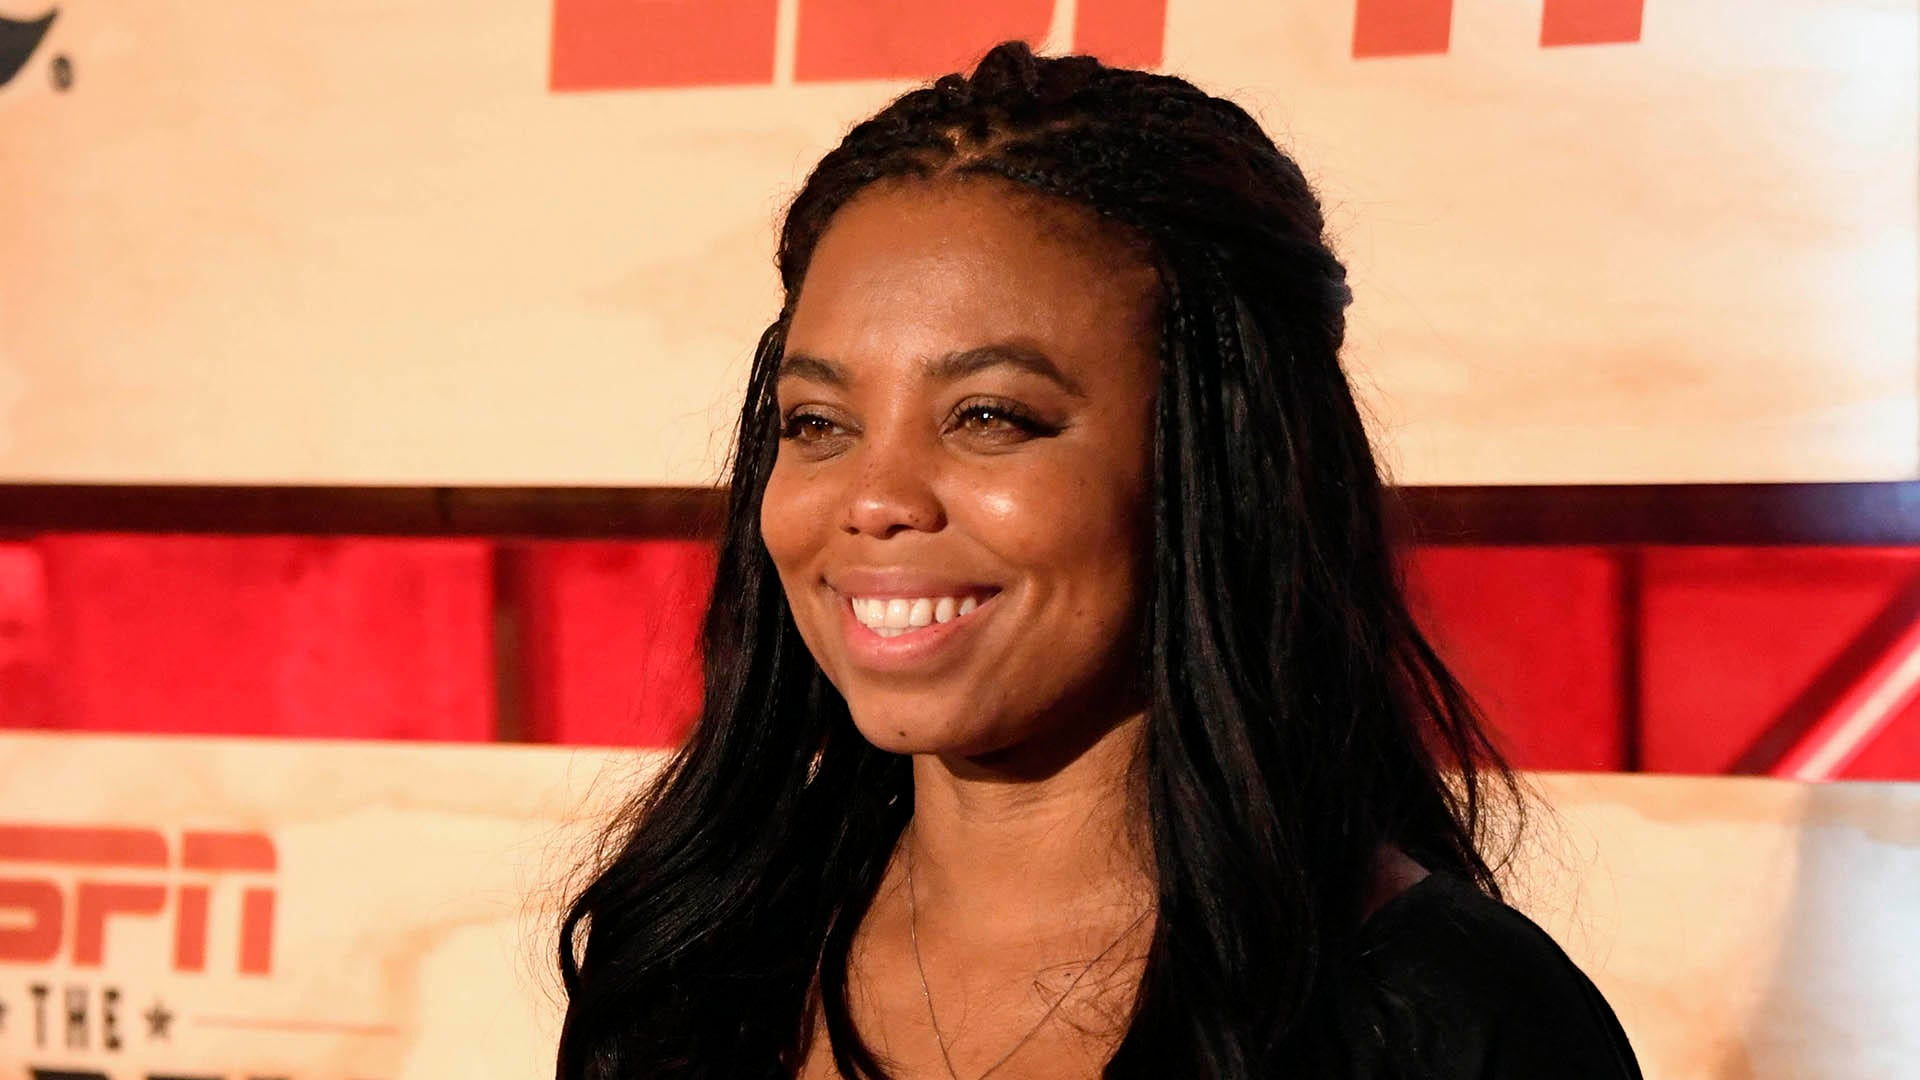 Jemele Hill is a Senior Correspondent and Columnist for ESPN and The Undefeated